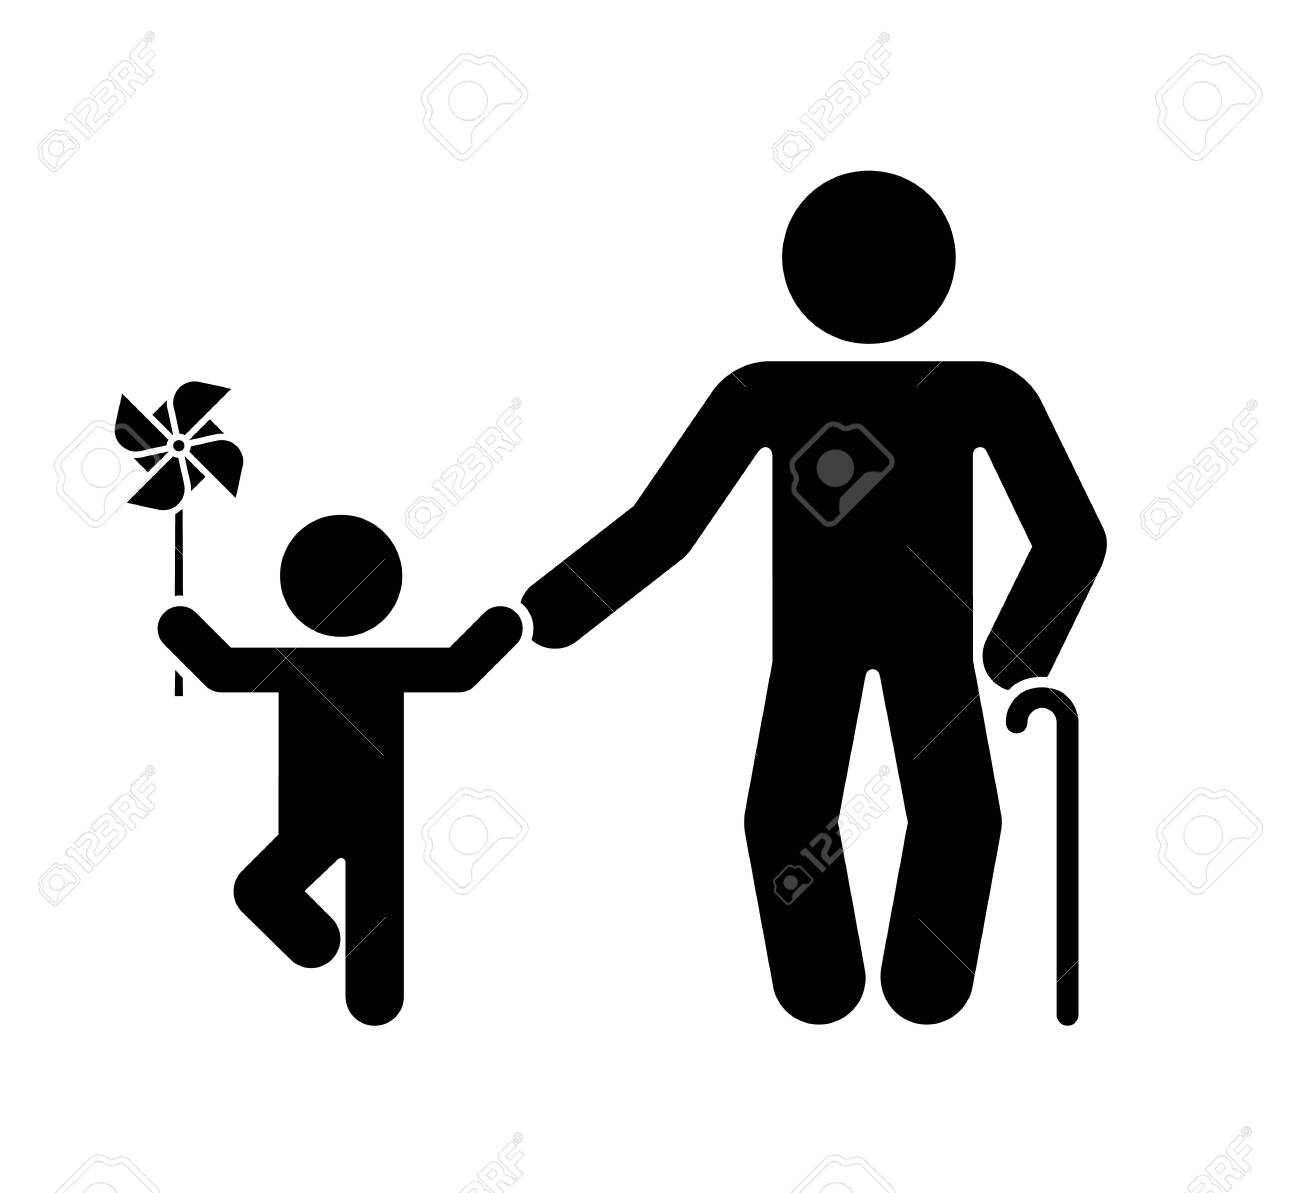 Pictogram that represents the grandfather and grandson. Different stages of human life. - 146843141